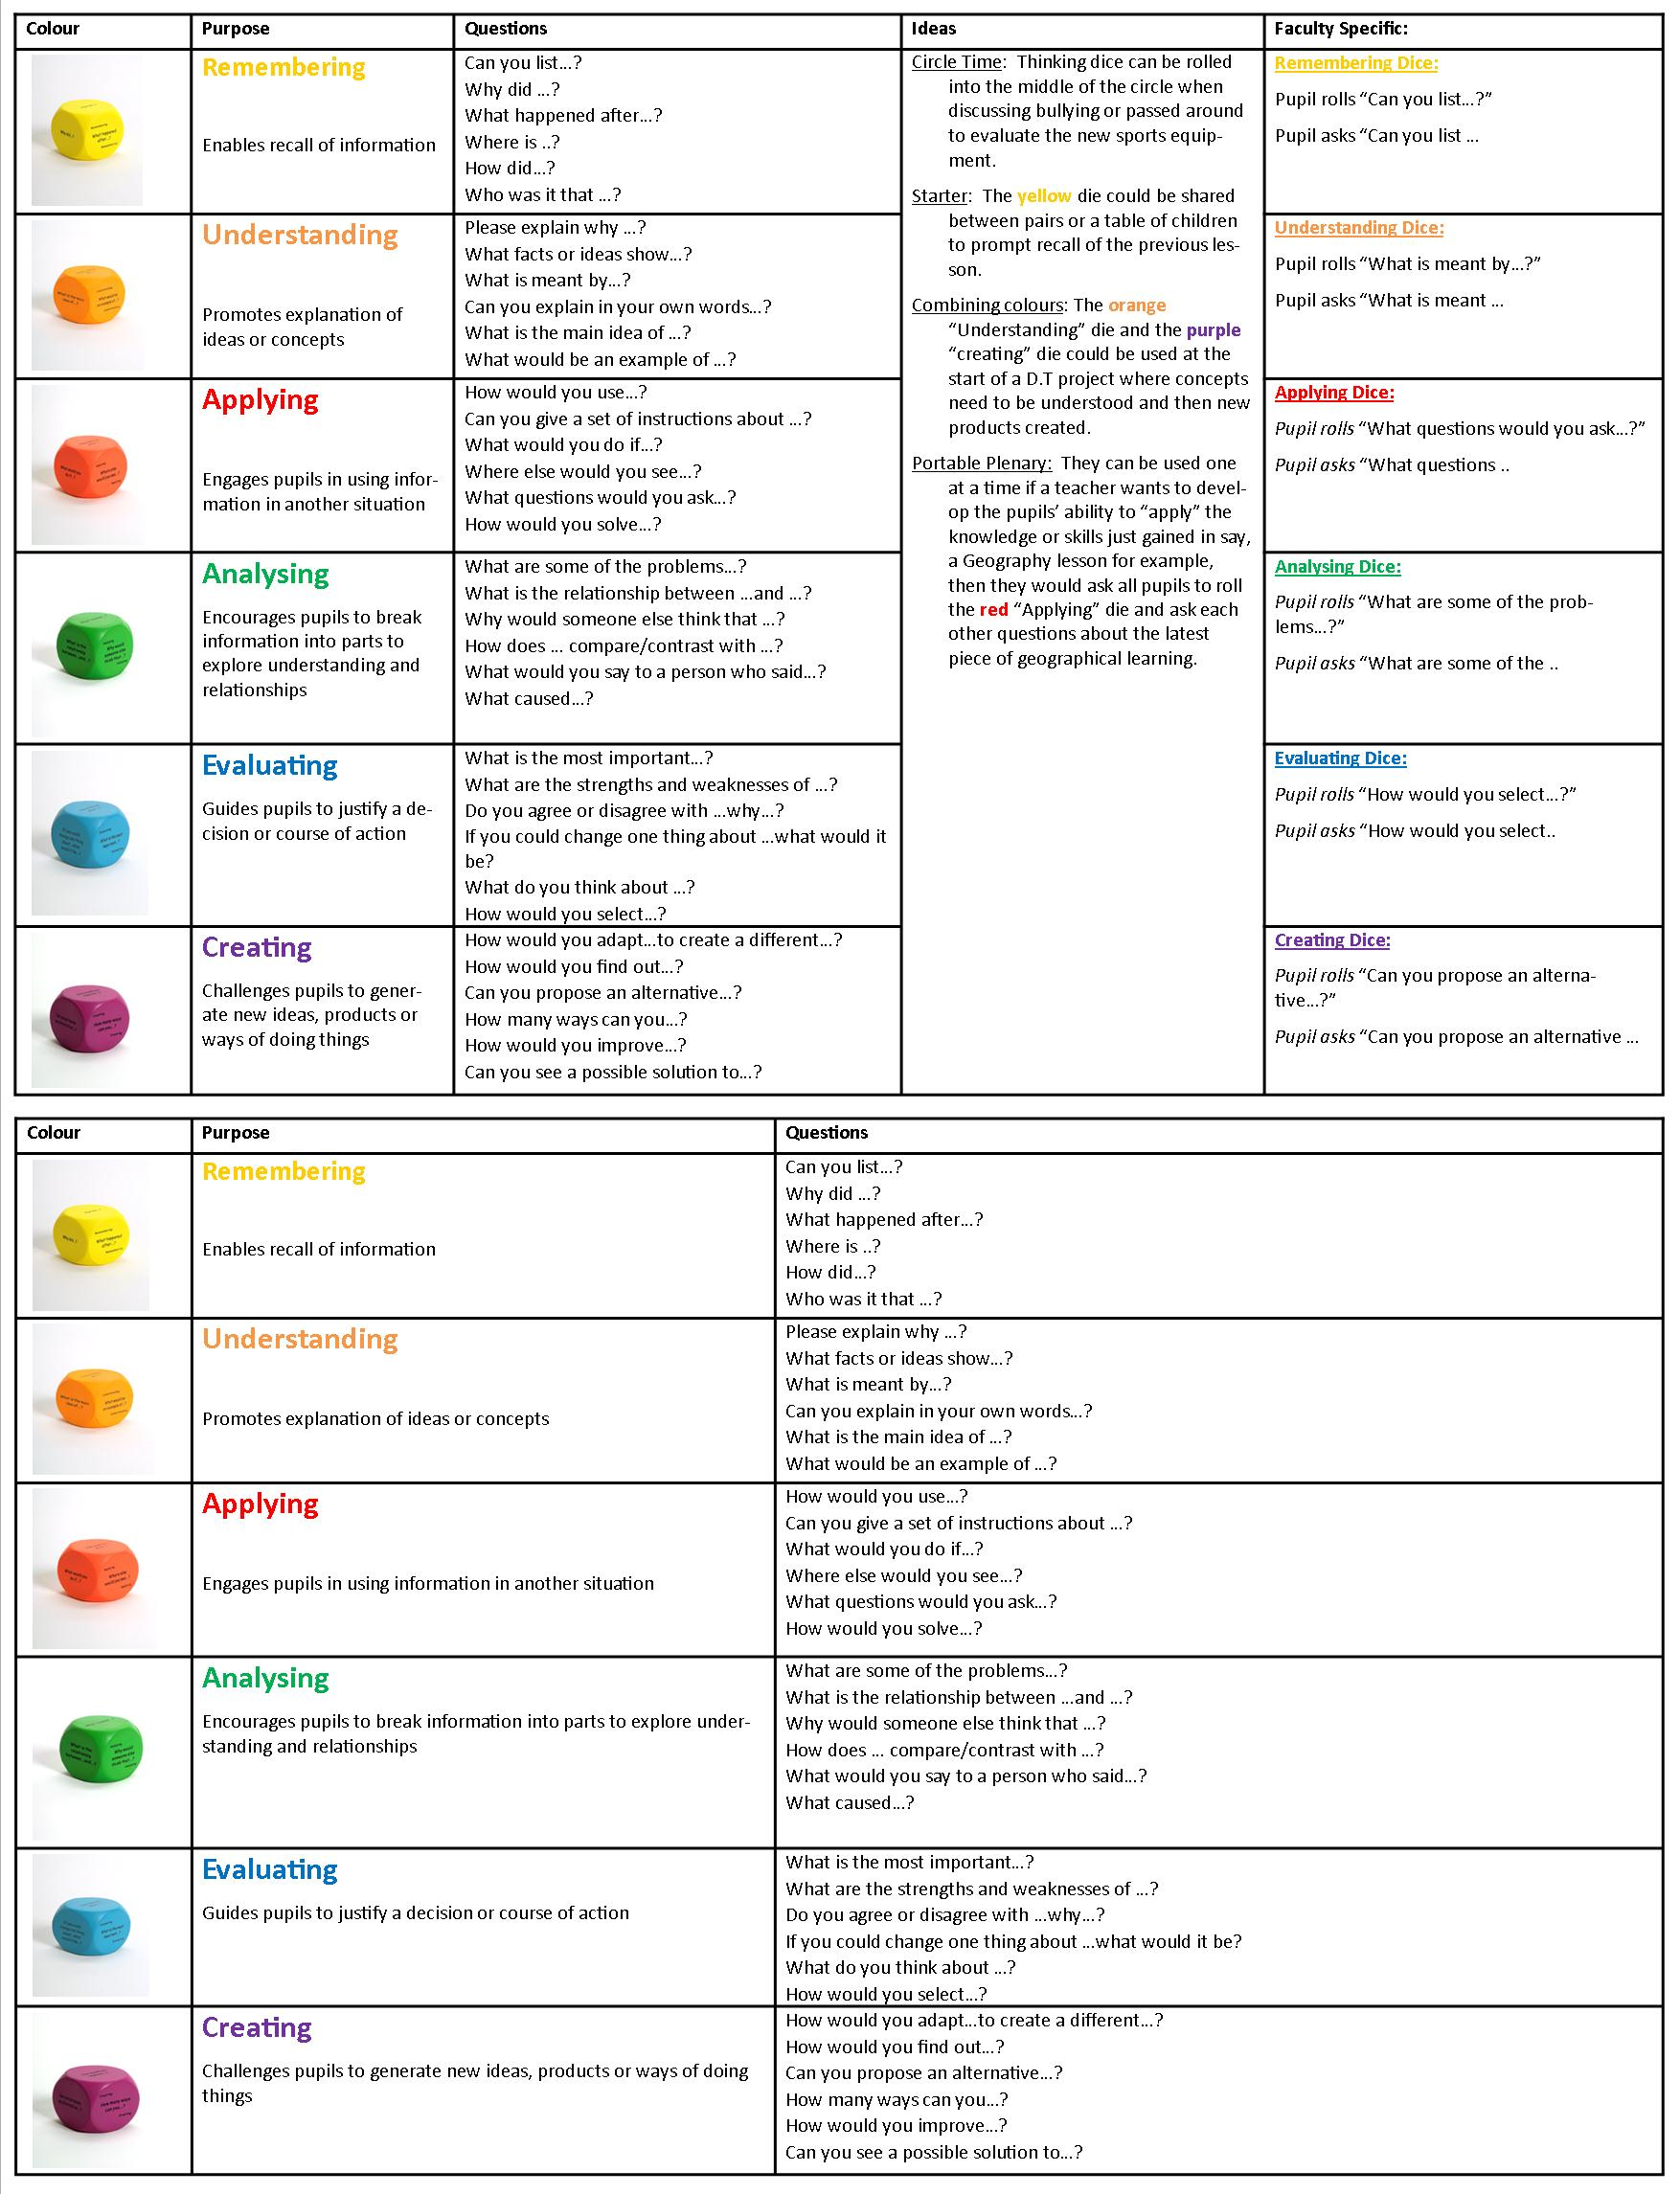 bloom taxonomy lesson plan template - squeeze every last drop of learning out of every lesson